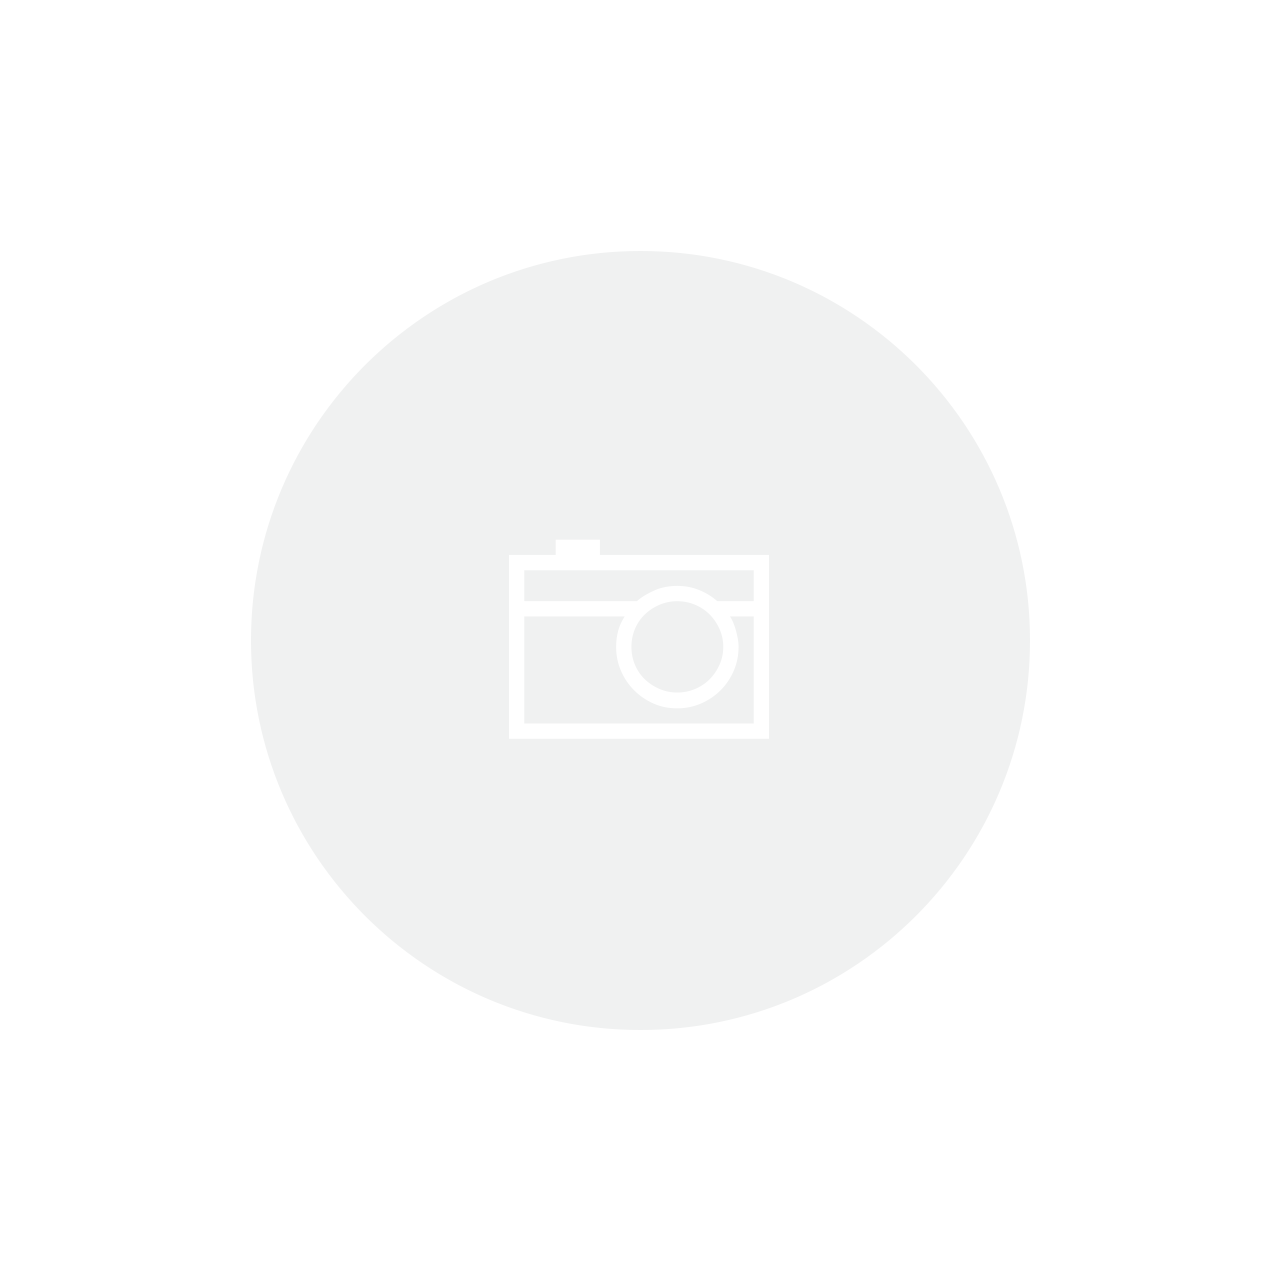 Espumante Demi Sec Saint Germain Aurora 660ml - Kit com 2 Taças